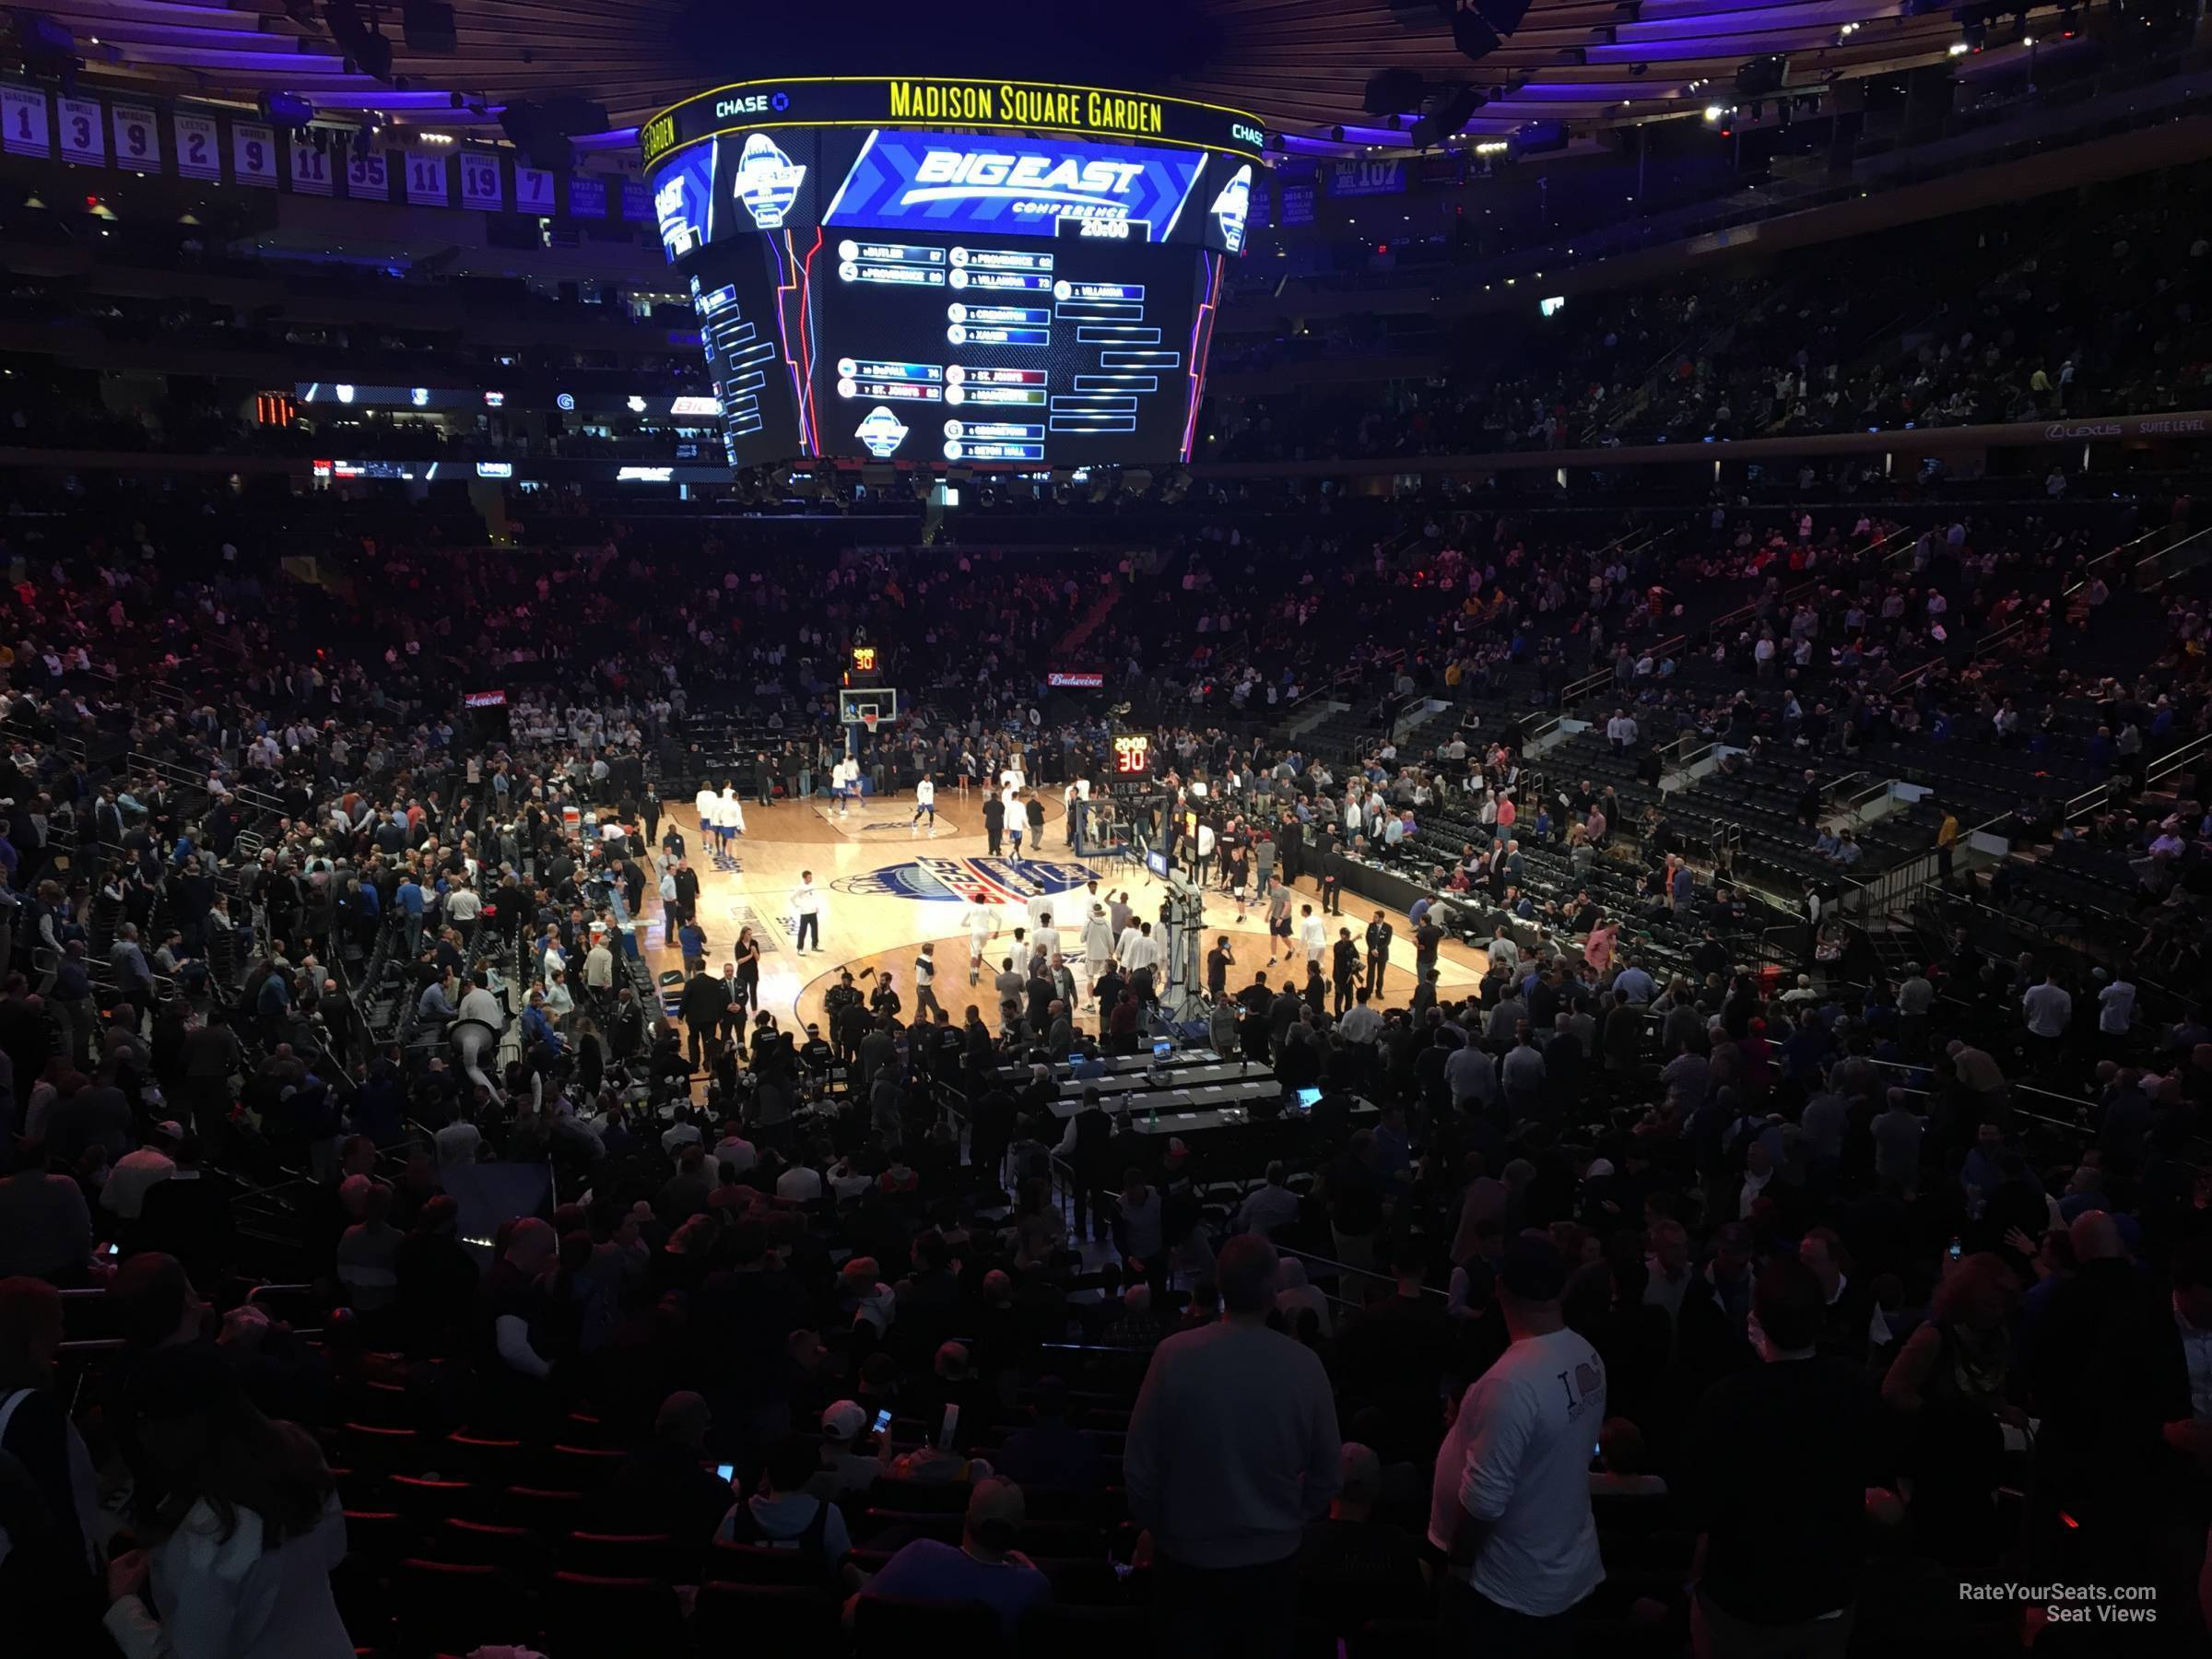 New York Knicks Seat View for Madison Square Garden Madison Club 60, Row 1